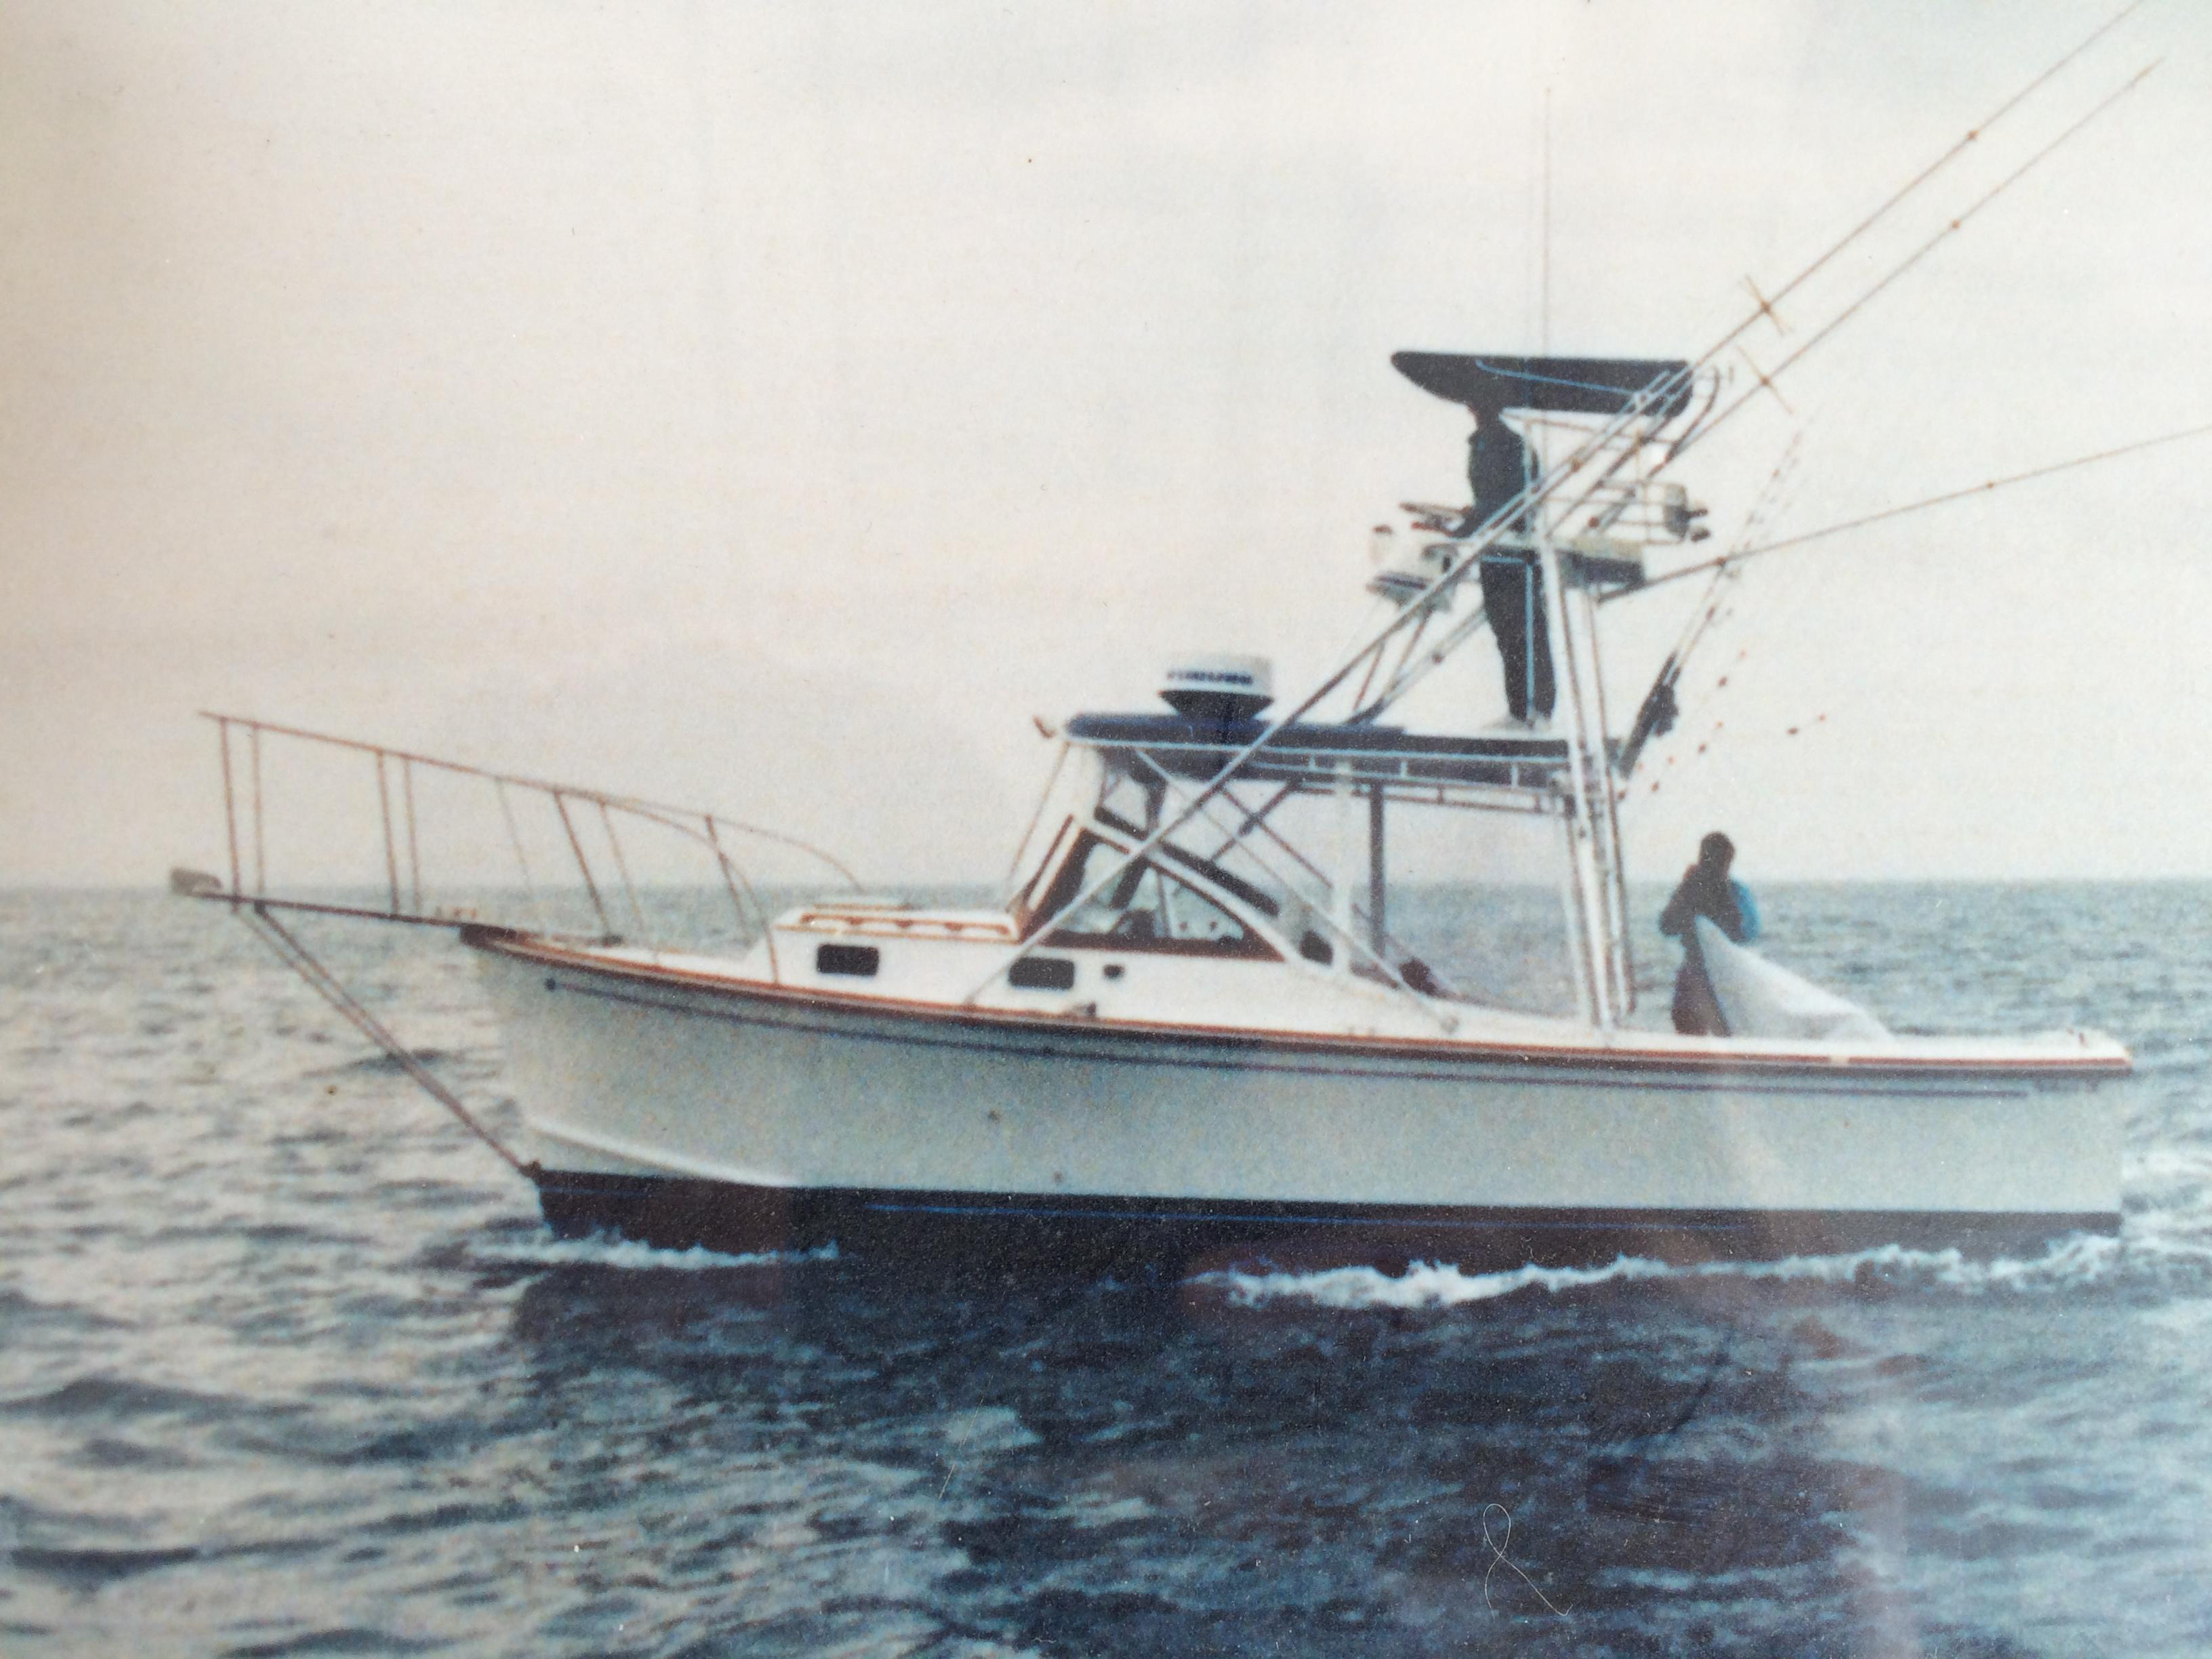 Niantic (CT) United States  City new picture : 1989 Fortier 26 Tower Power Boat For Sale www.yachtworld.com